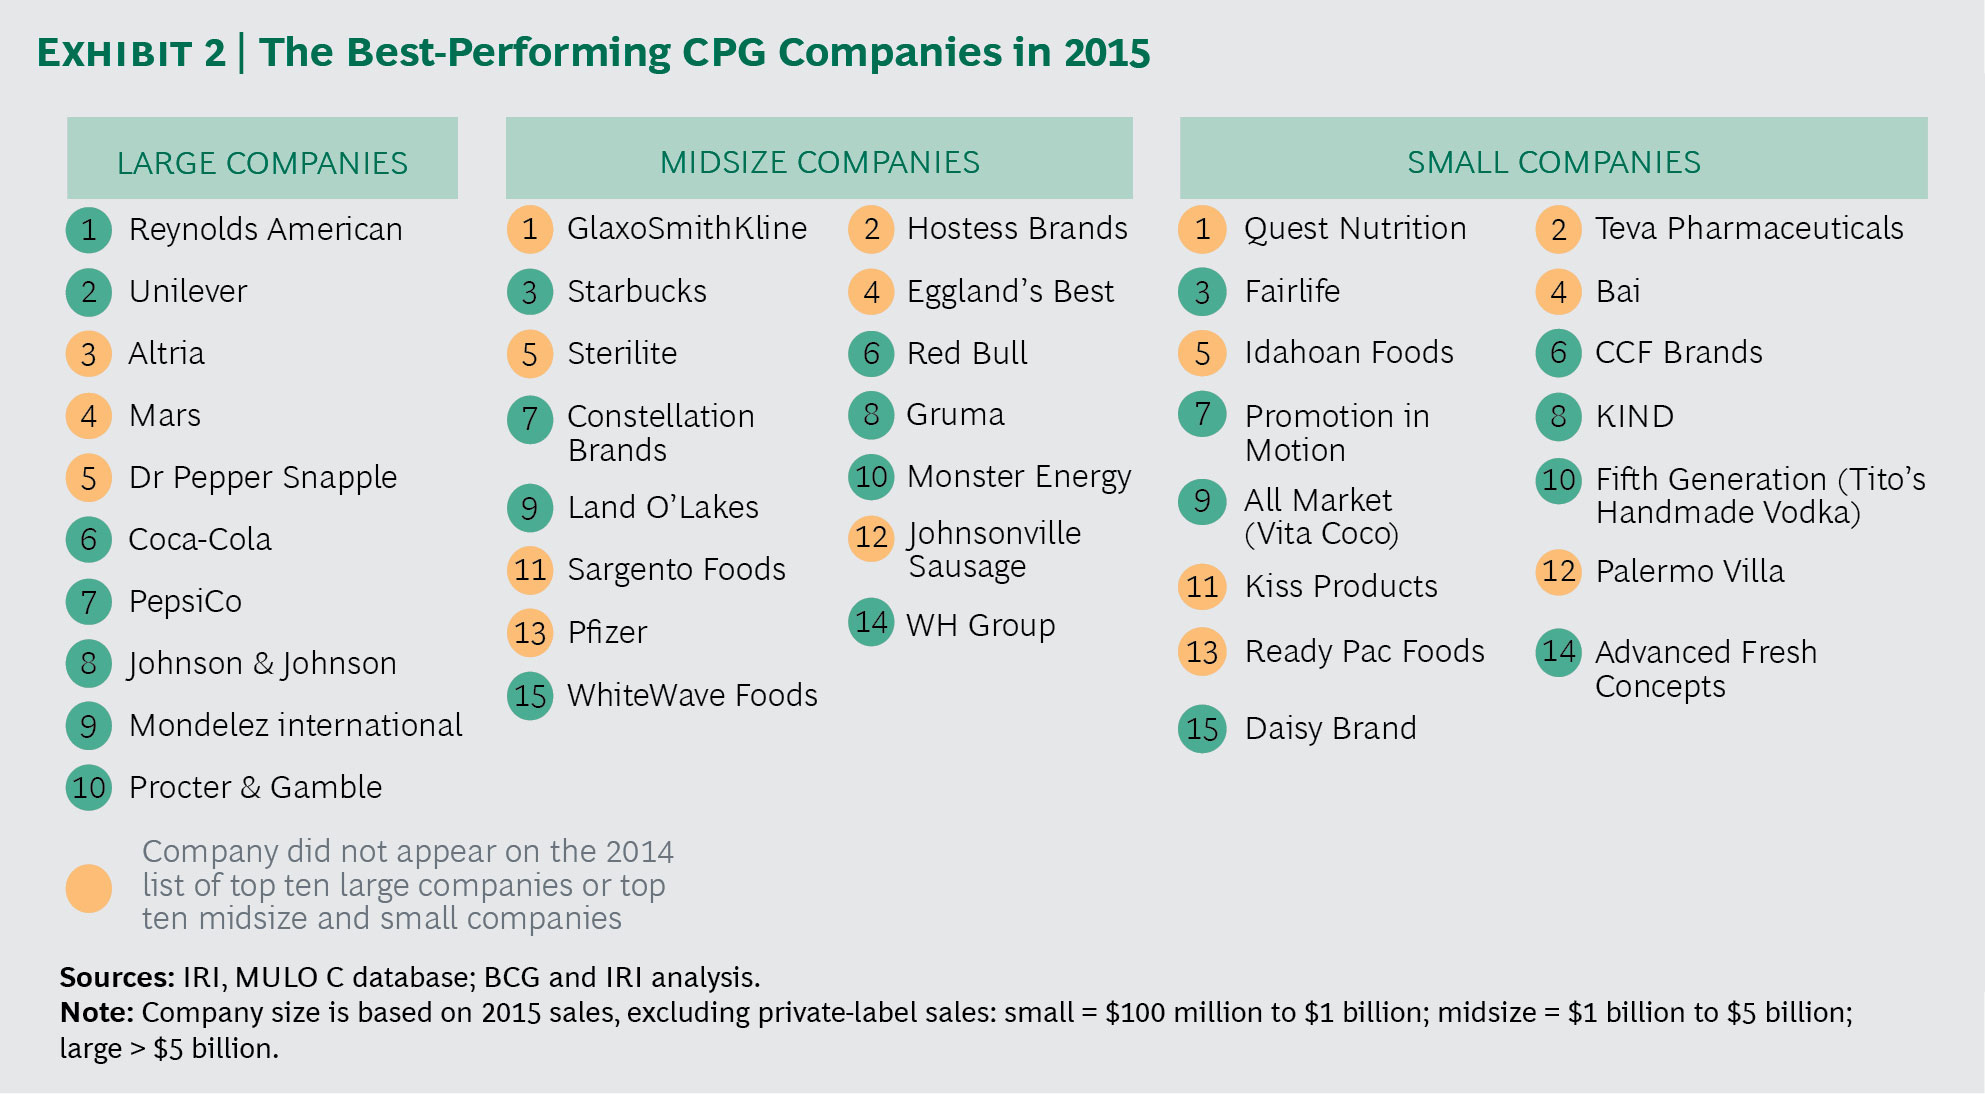 Small, mid-size C P G  companies gained share in 2015   Food